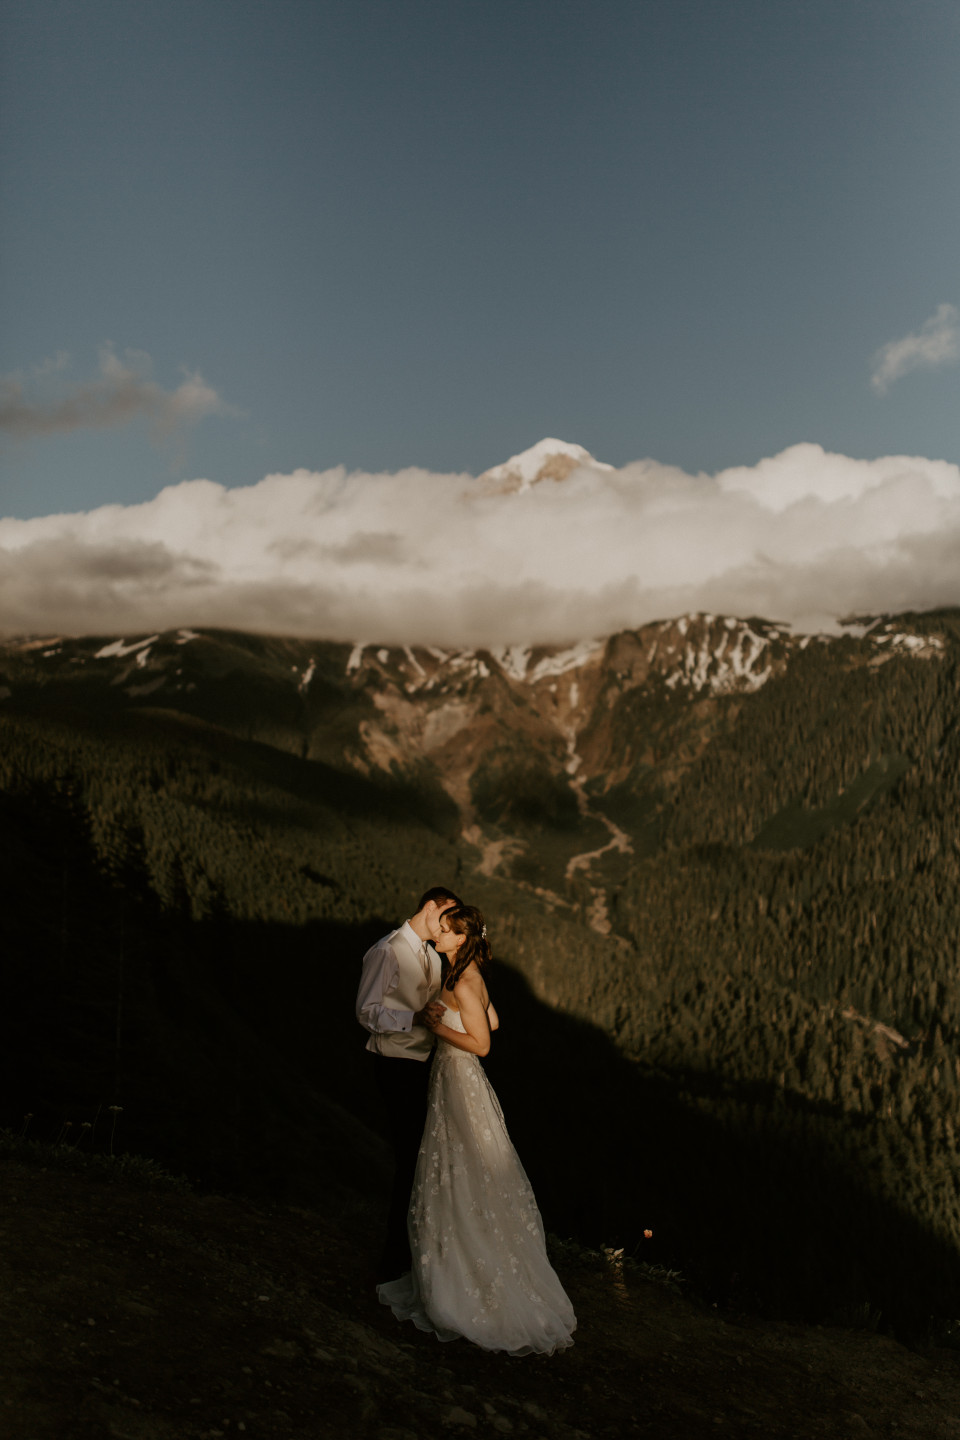 Ryan and Moira move in for a kiss in front of Mount Hood. Adventure elopement wedding shoot by Sienna Plus Josh.